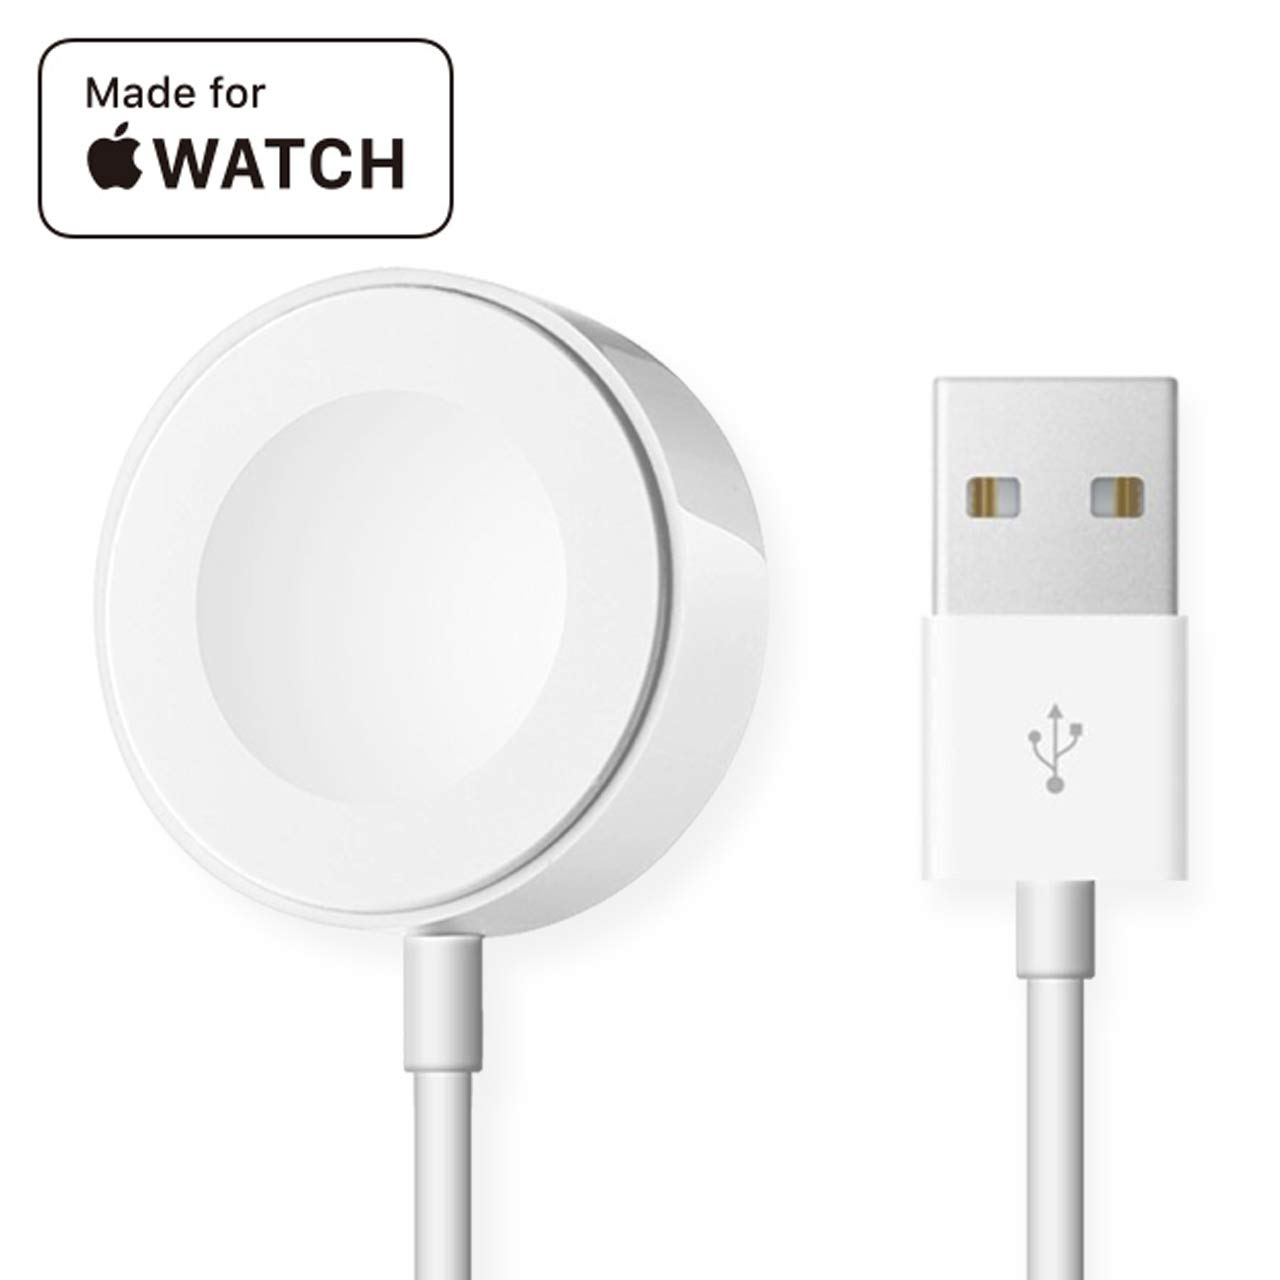 BrandonRyan Wireless Watch Charger for iWatch Magnetic Charging Cable Portable Charger Pad 3.3 FT for 38mm 42mm iWatch